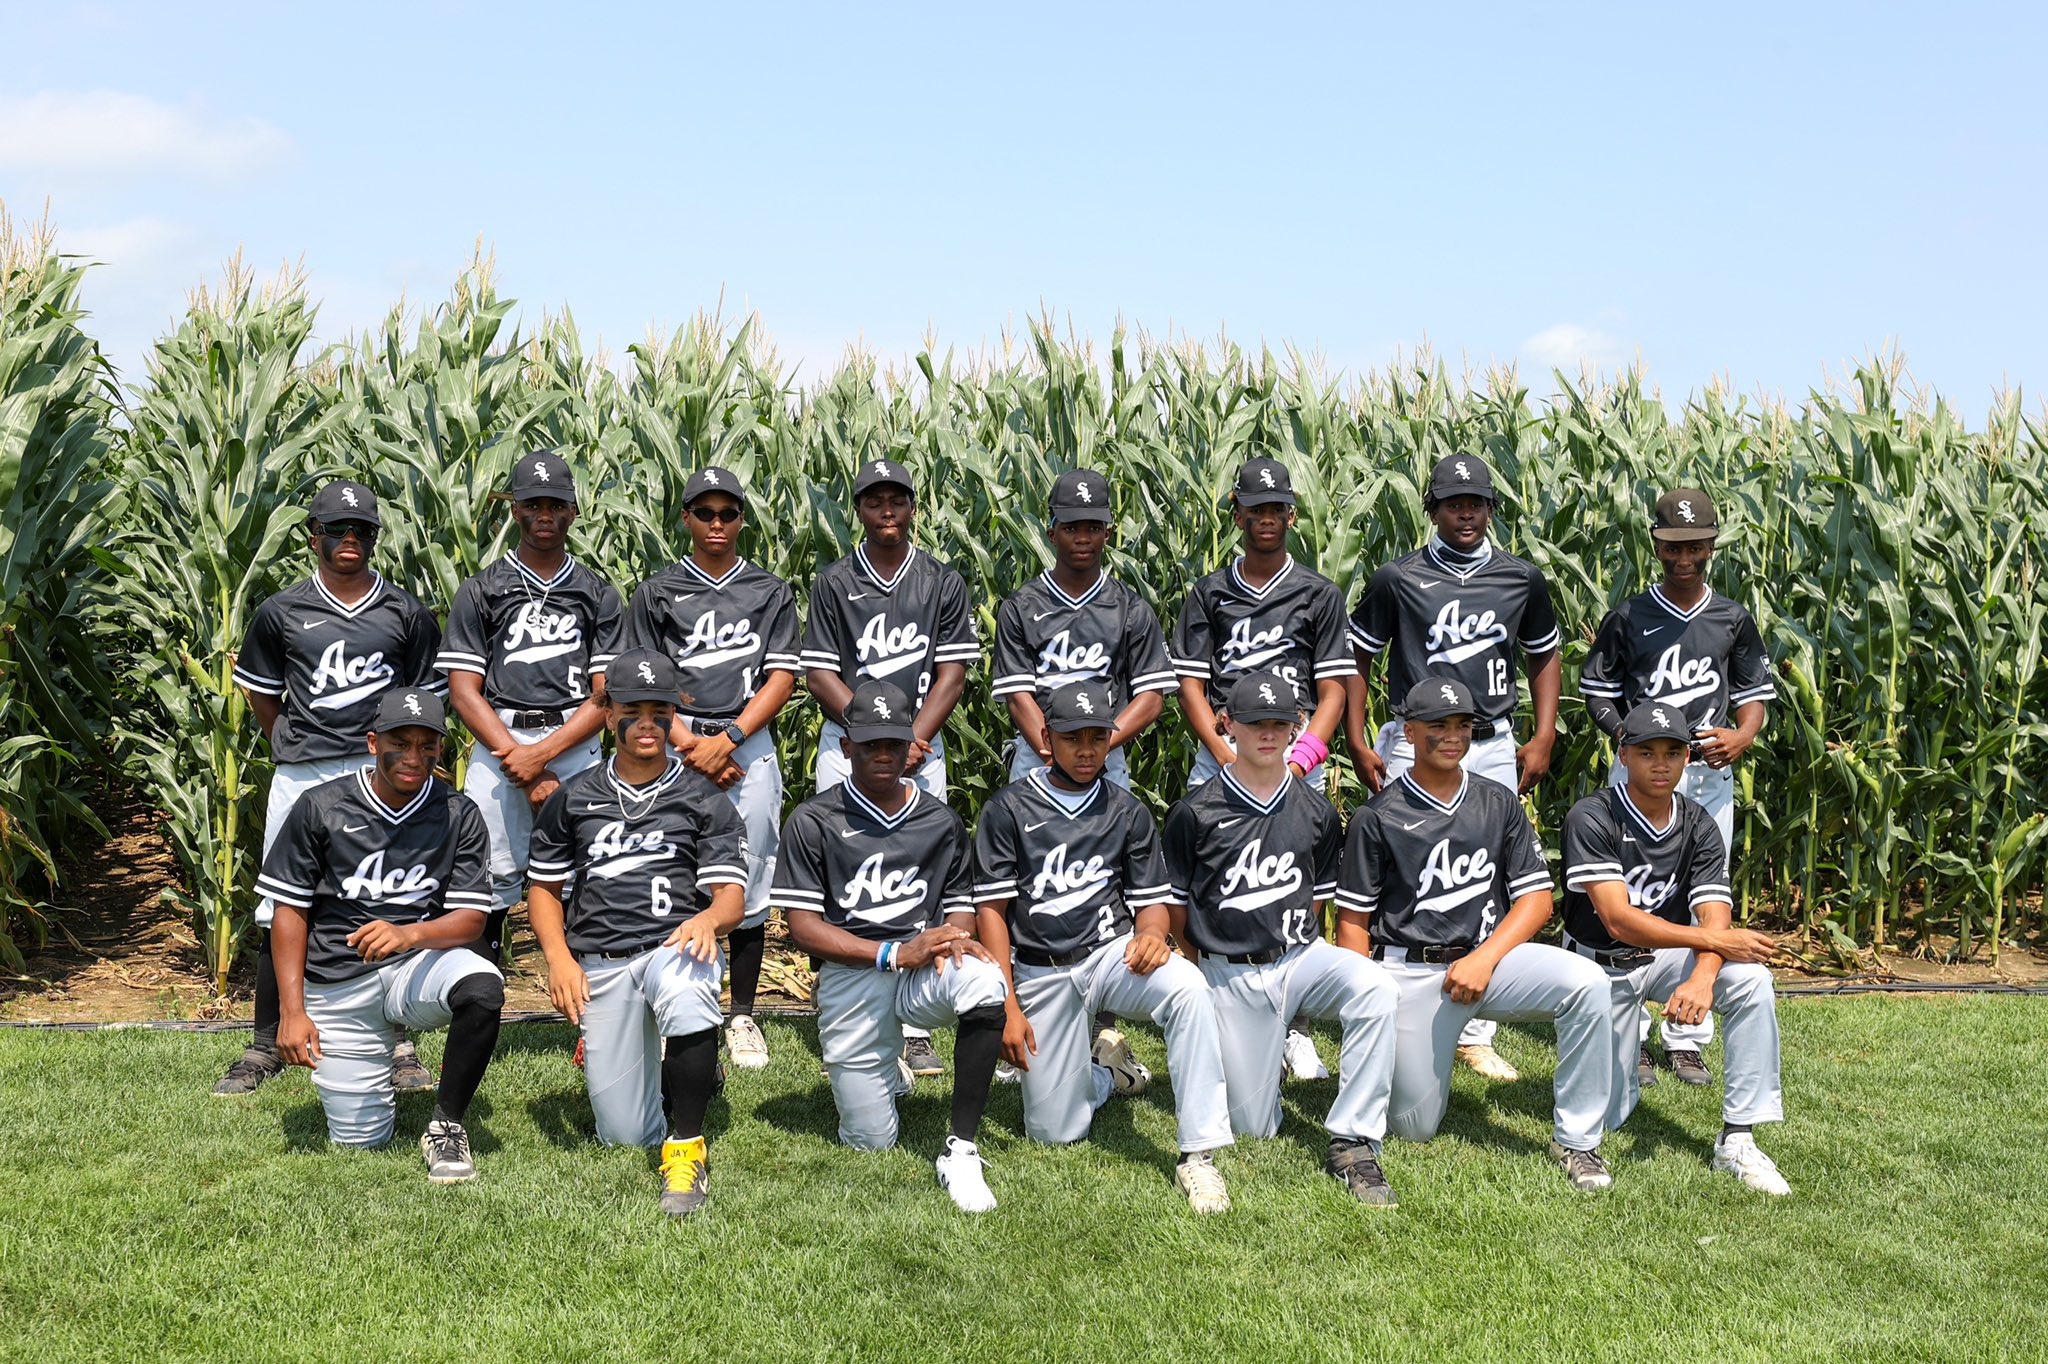 ACE U 14 Team in front of corn at Field of Dreams field in Iowa. Credit: MLB Photos